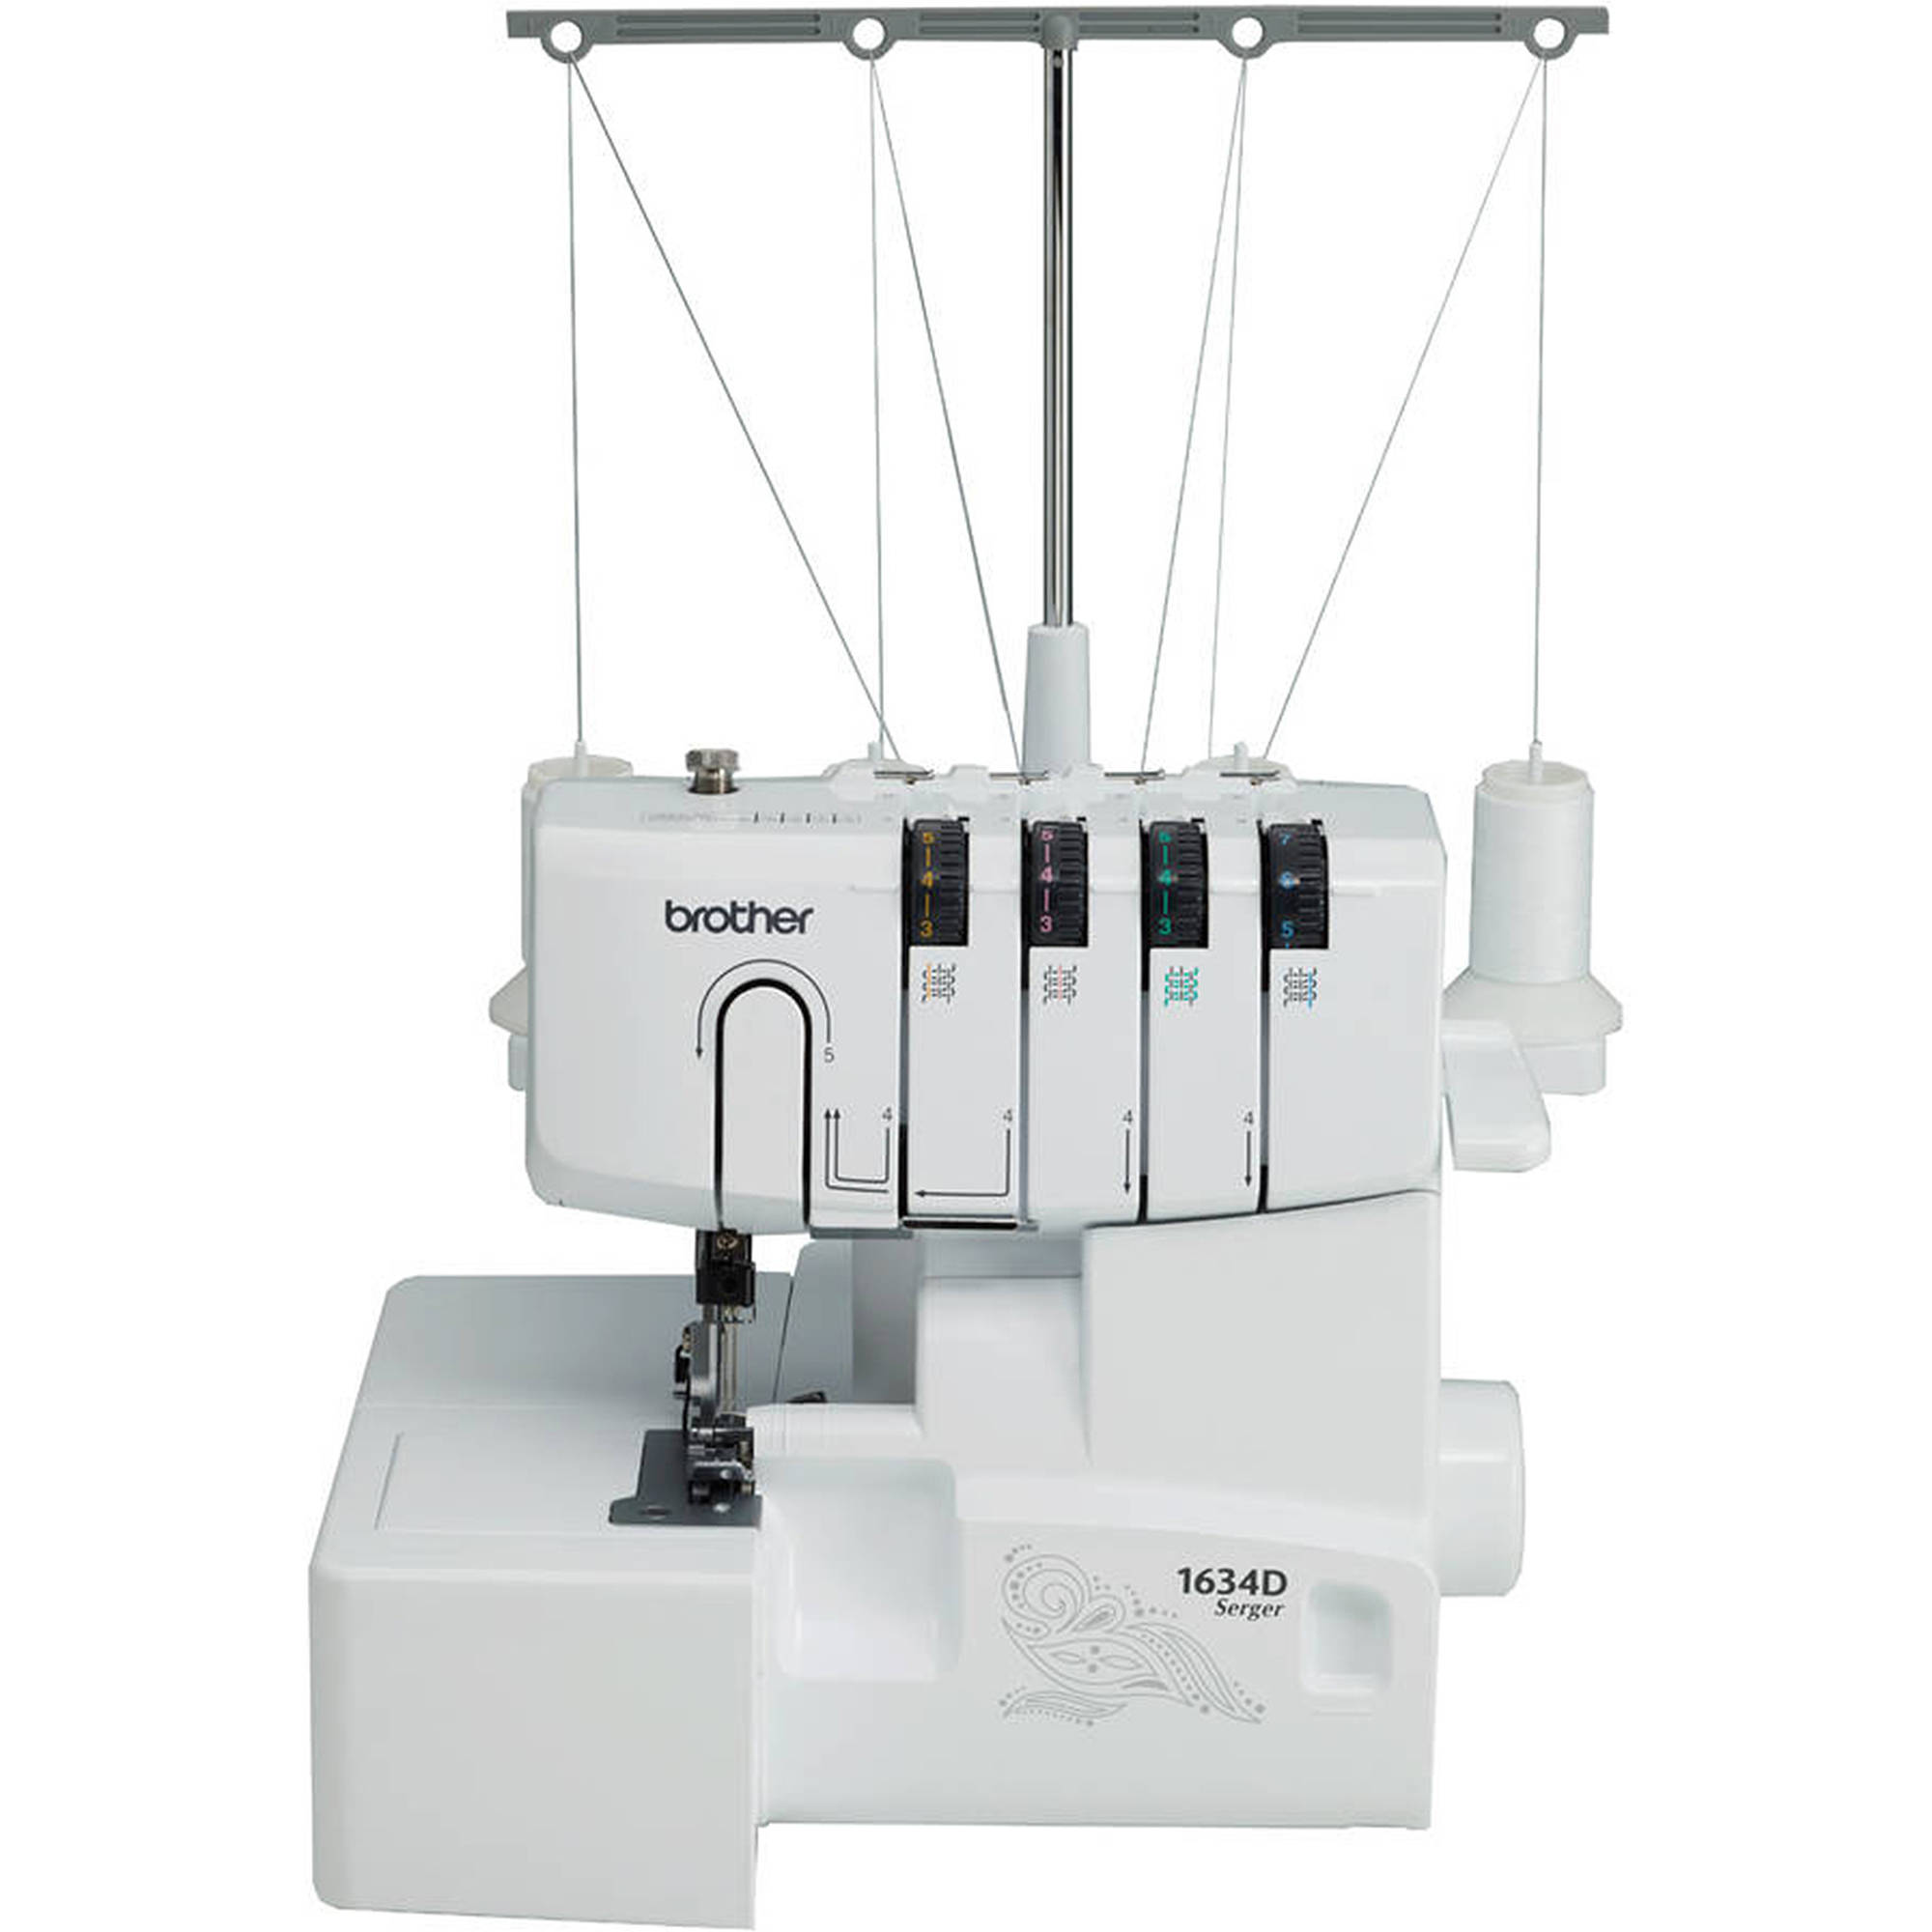 Refurbished Brother 3-Thread or 4-Thread Serger with Differential Feed, R1634D